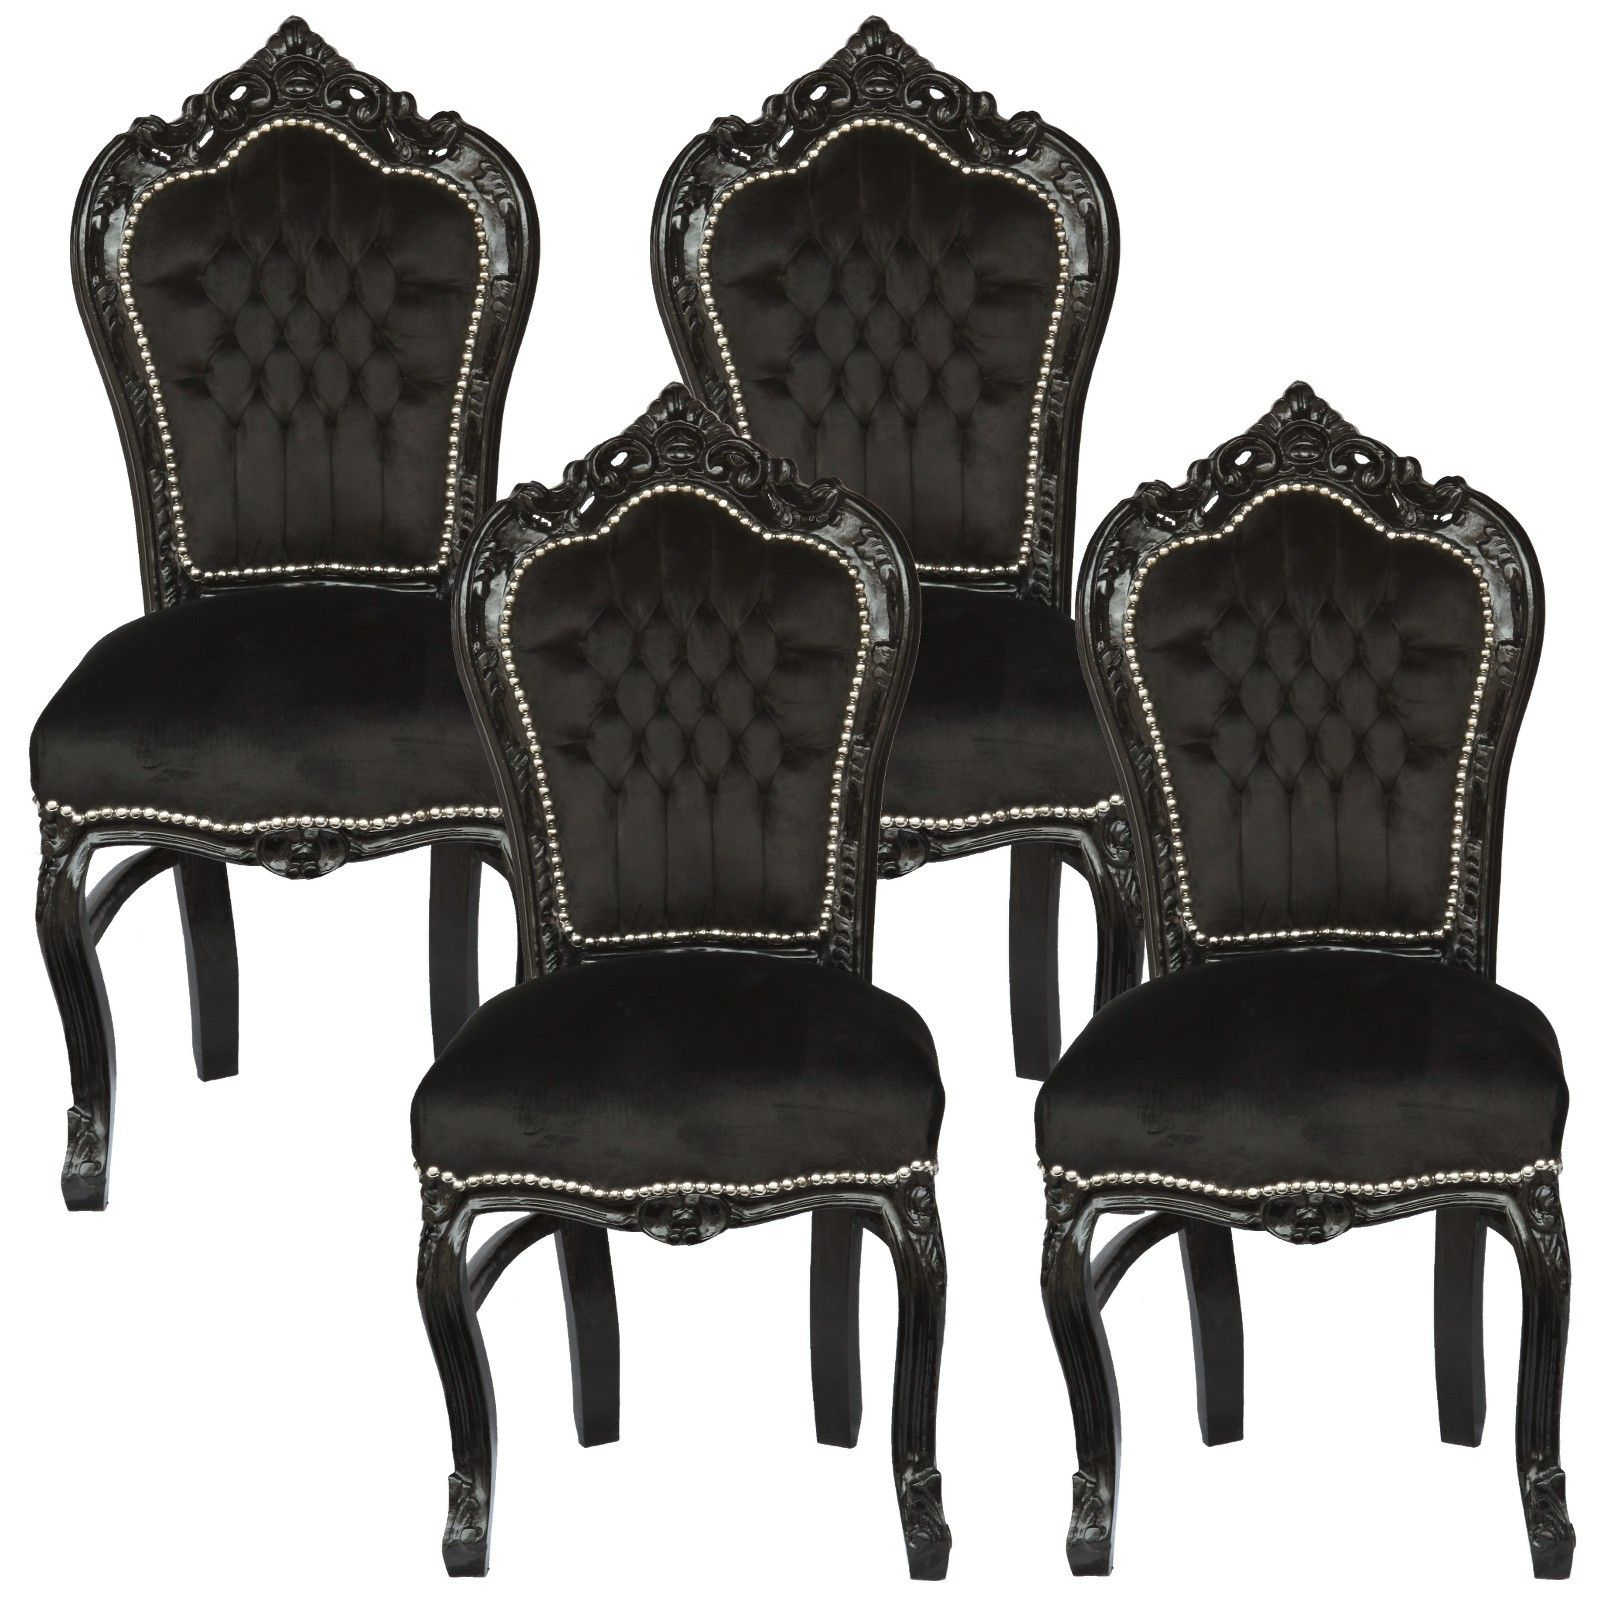 Amazing Set Of 4 Dining Room Chairs Baroque Gothic Black Velvet